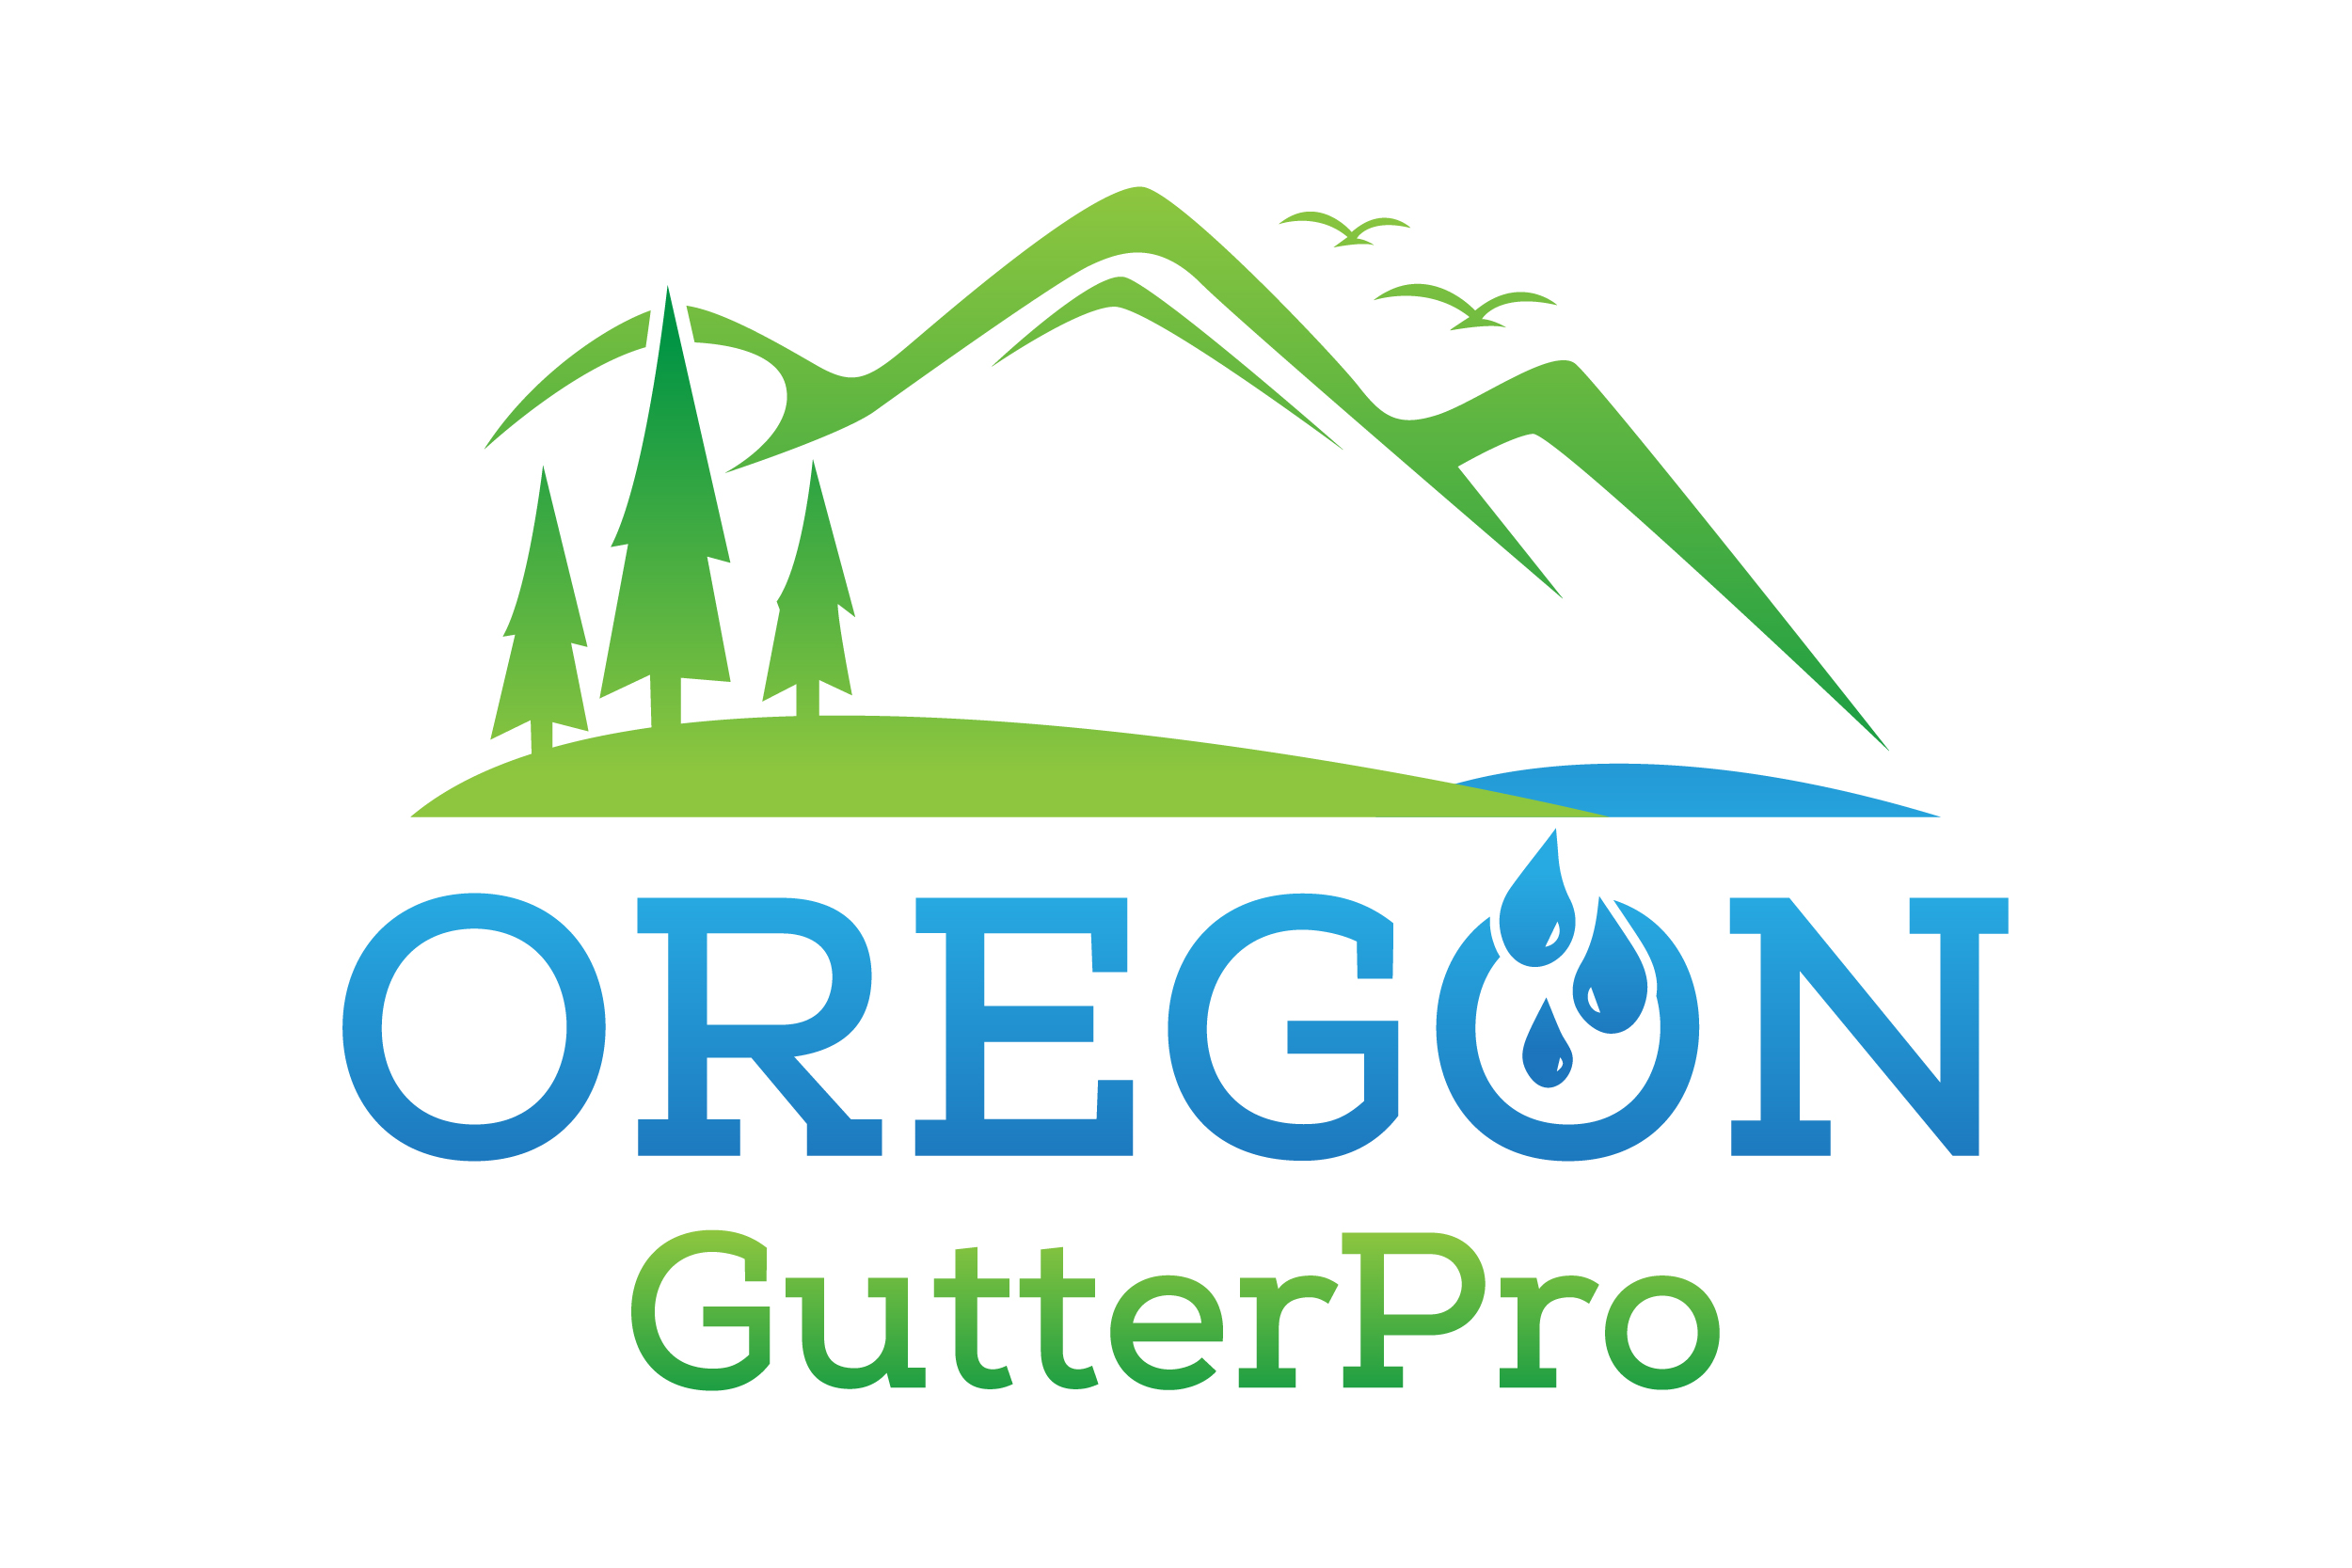 Oregon GutterPro, LLC